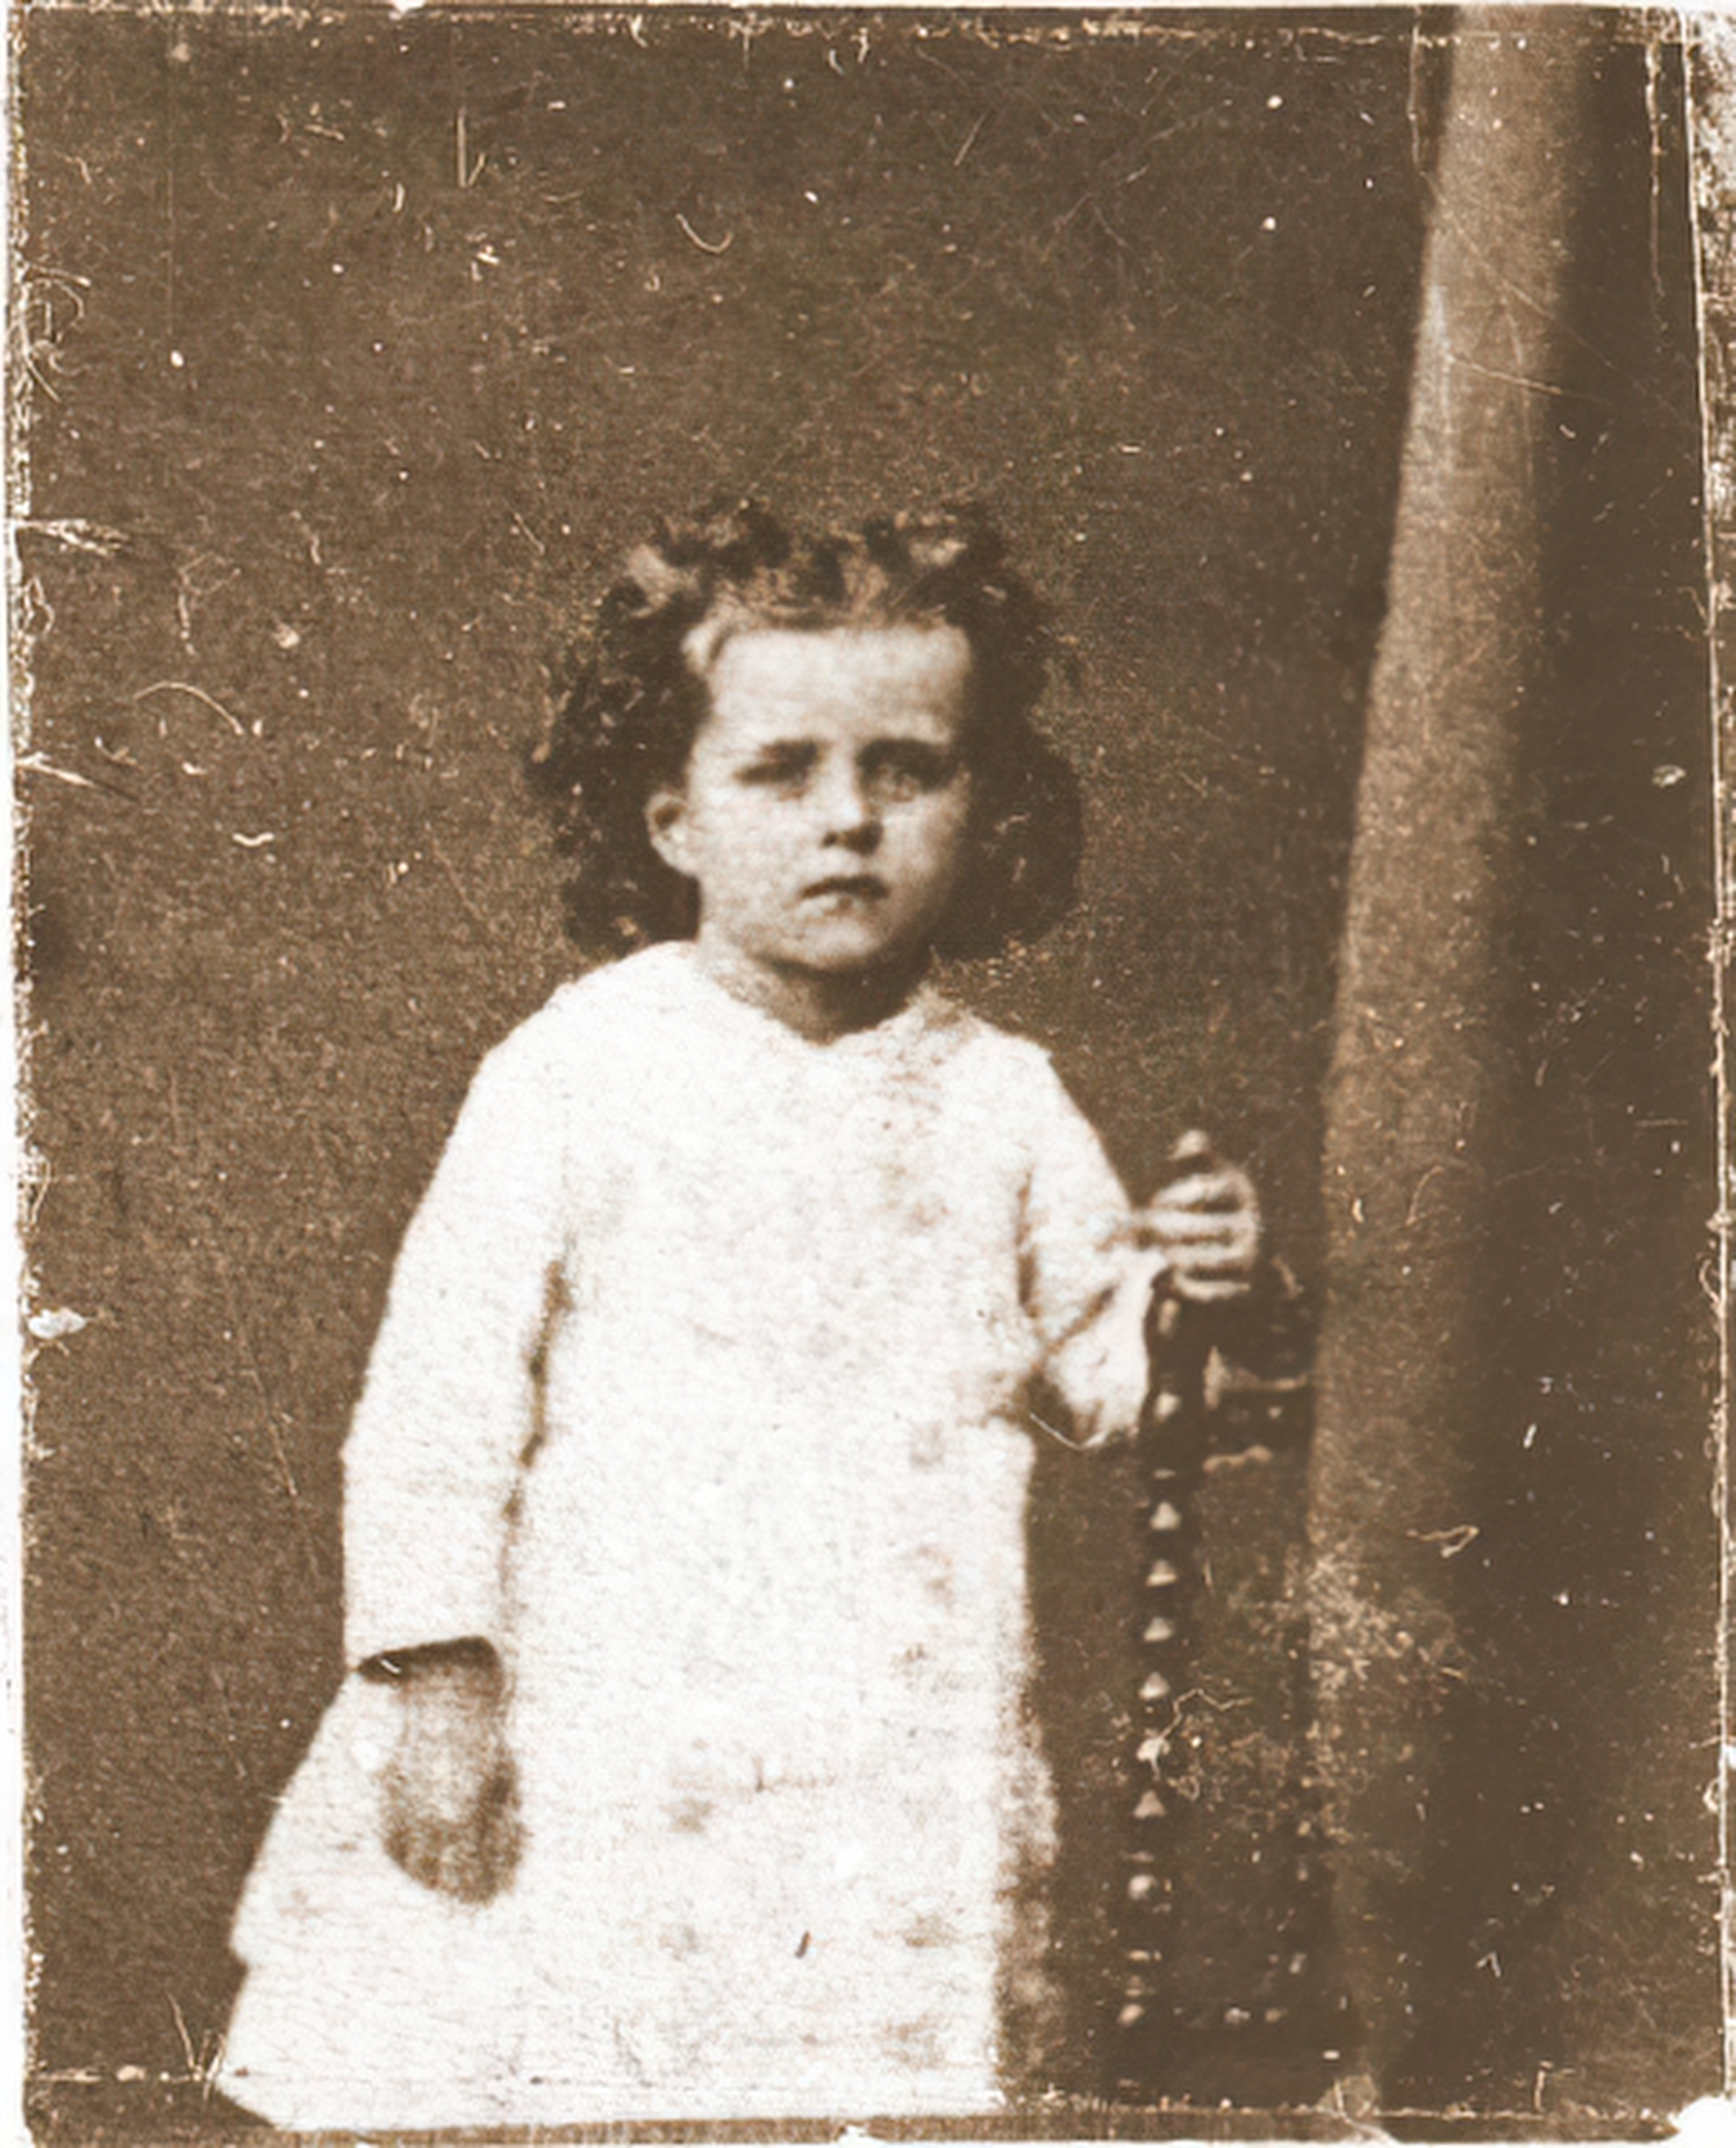 St. Thérèse of Lisieux at 3 years old